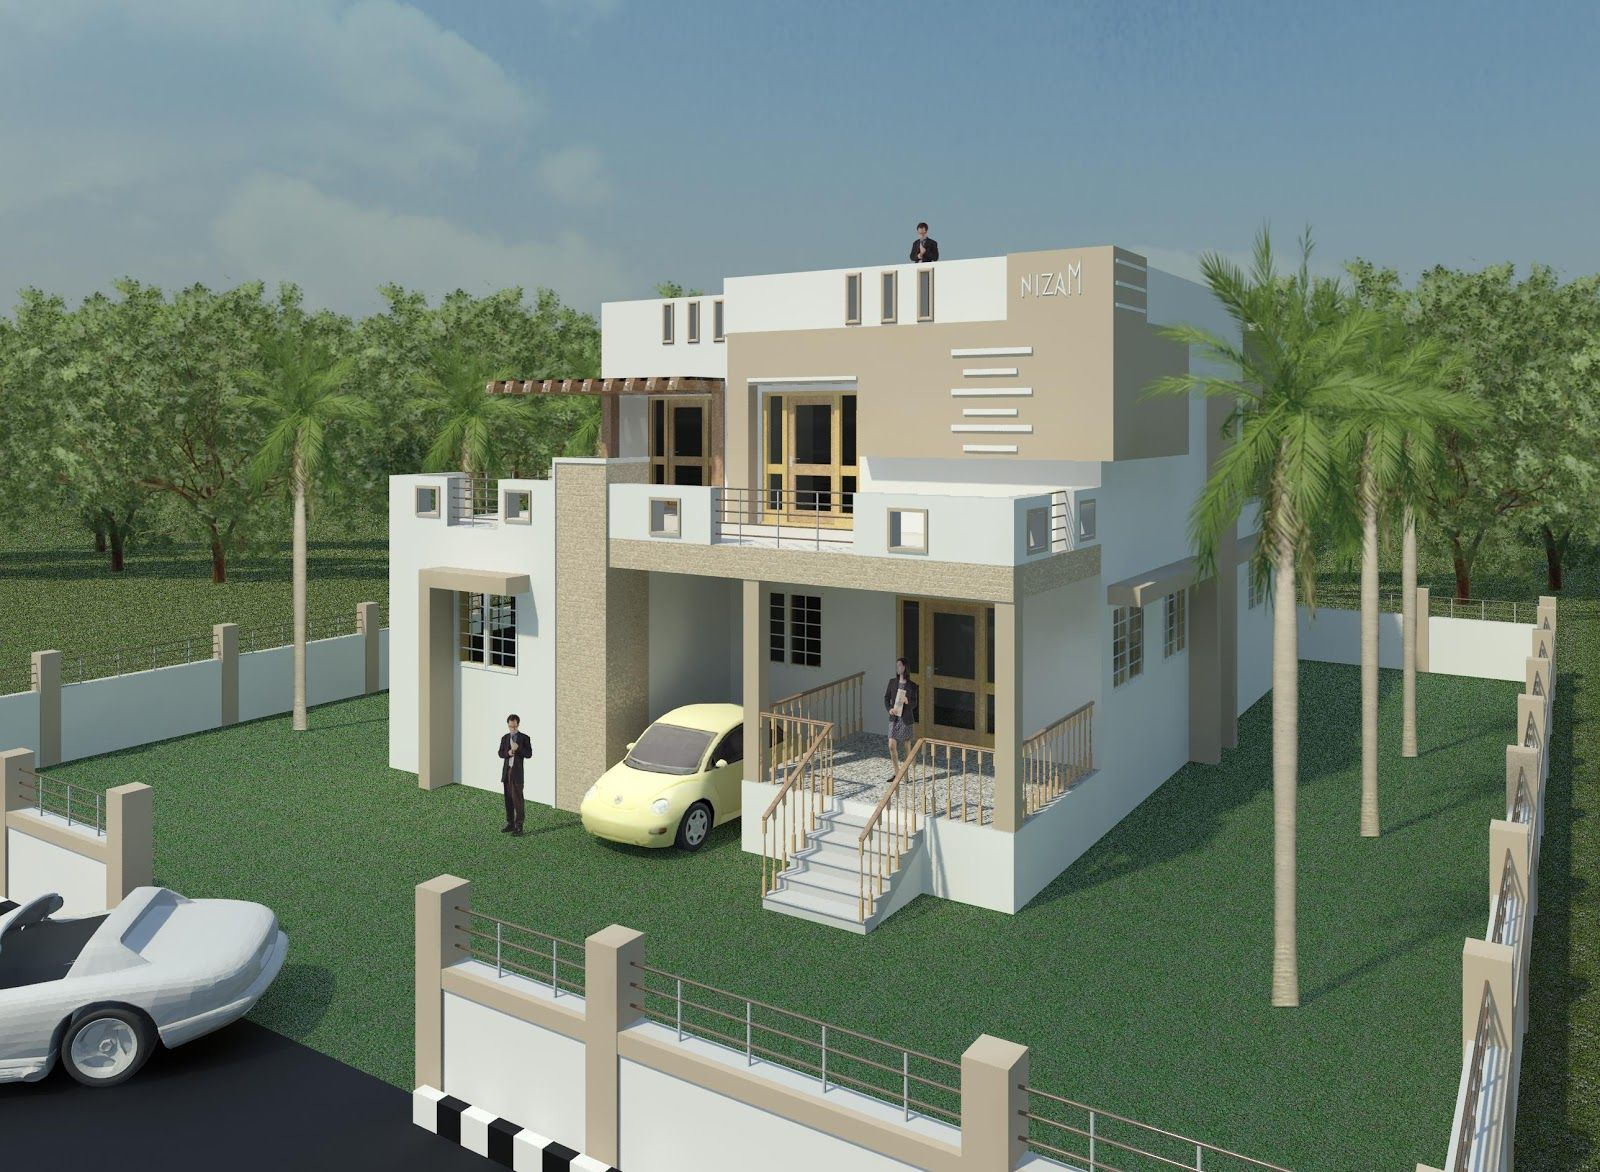 Creative exterior design exterior 3d views house Free indian home plans and designs